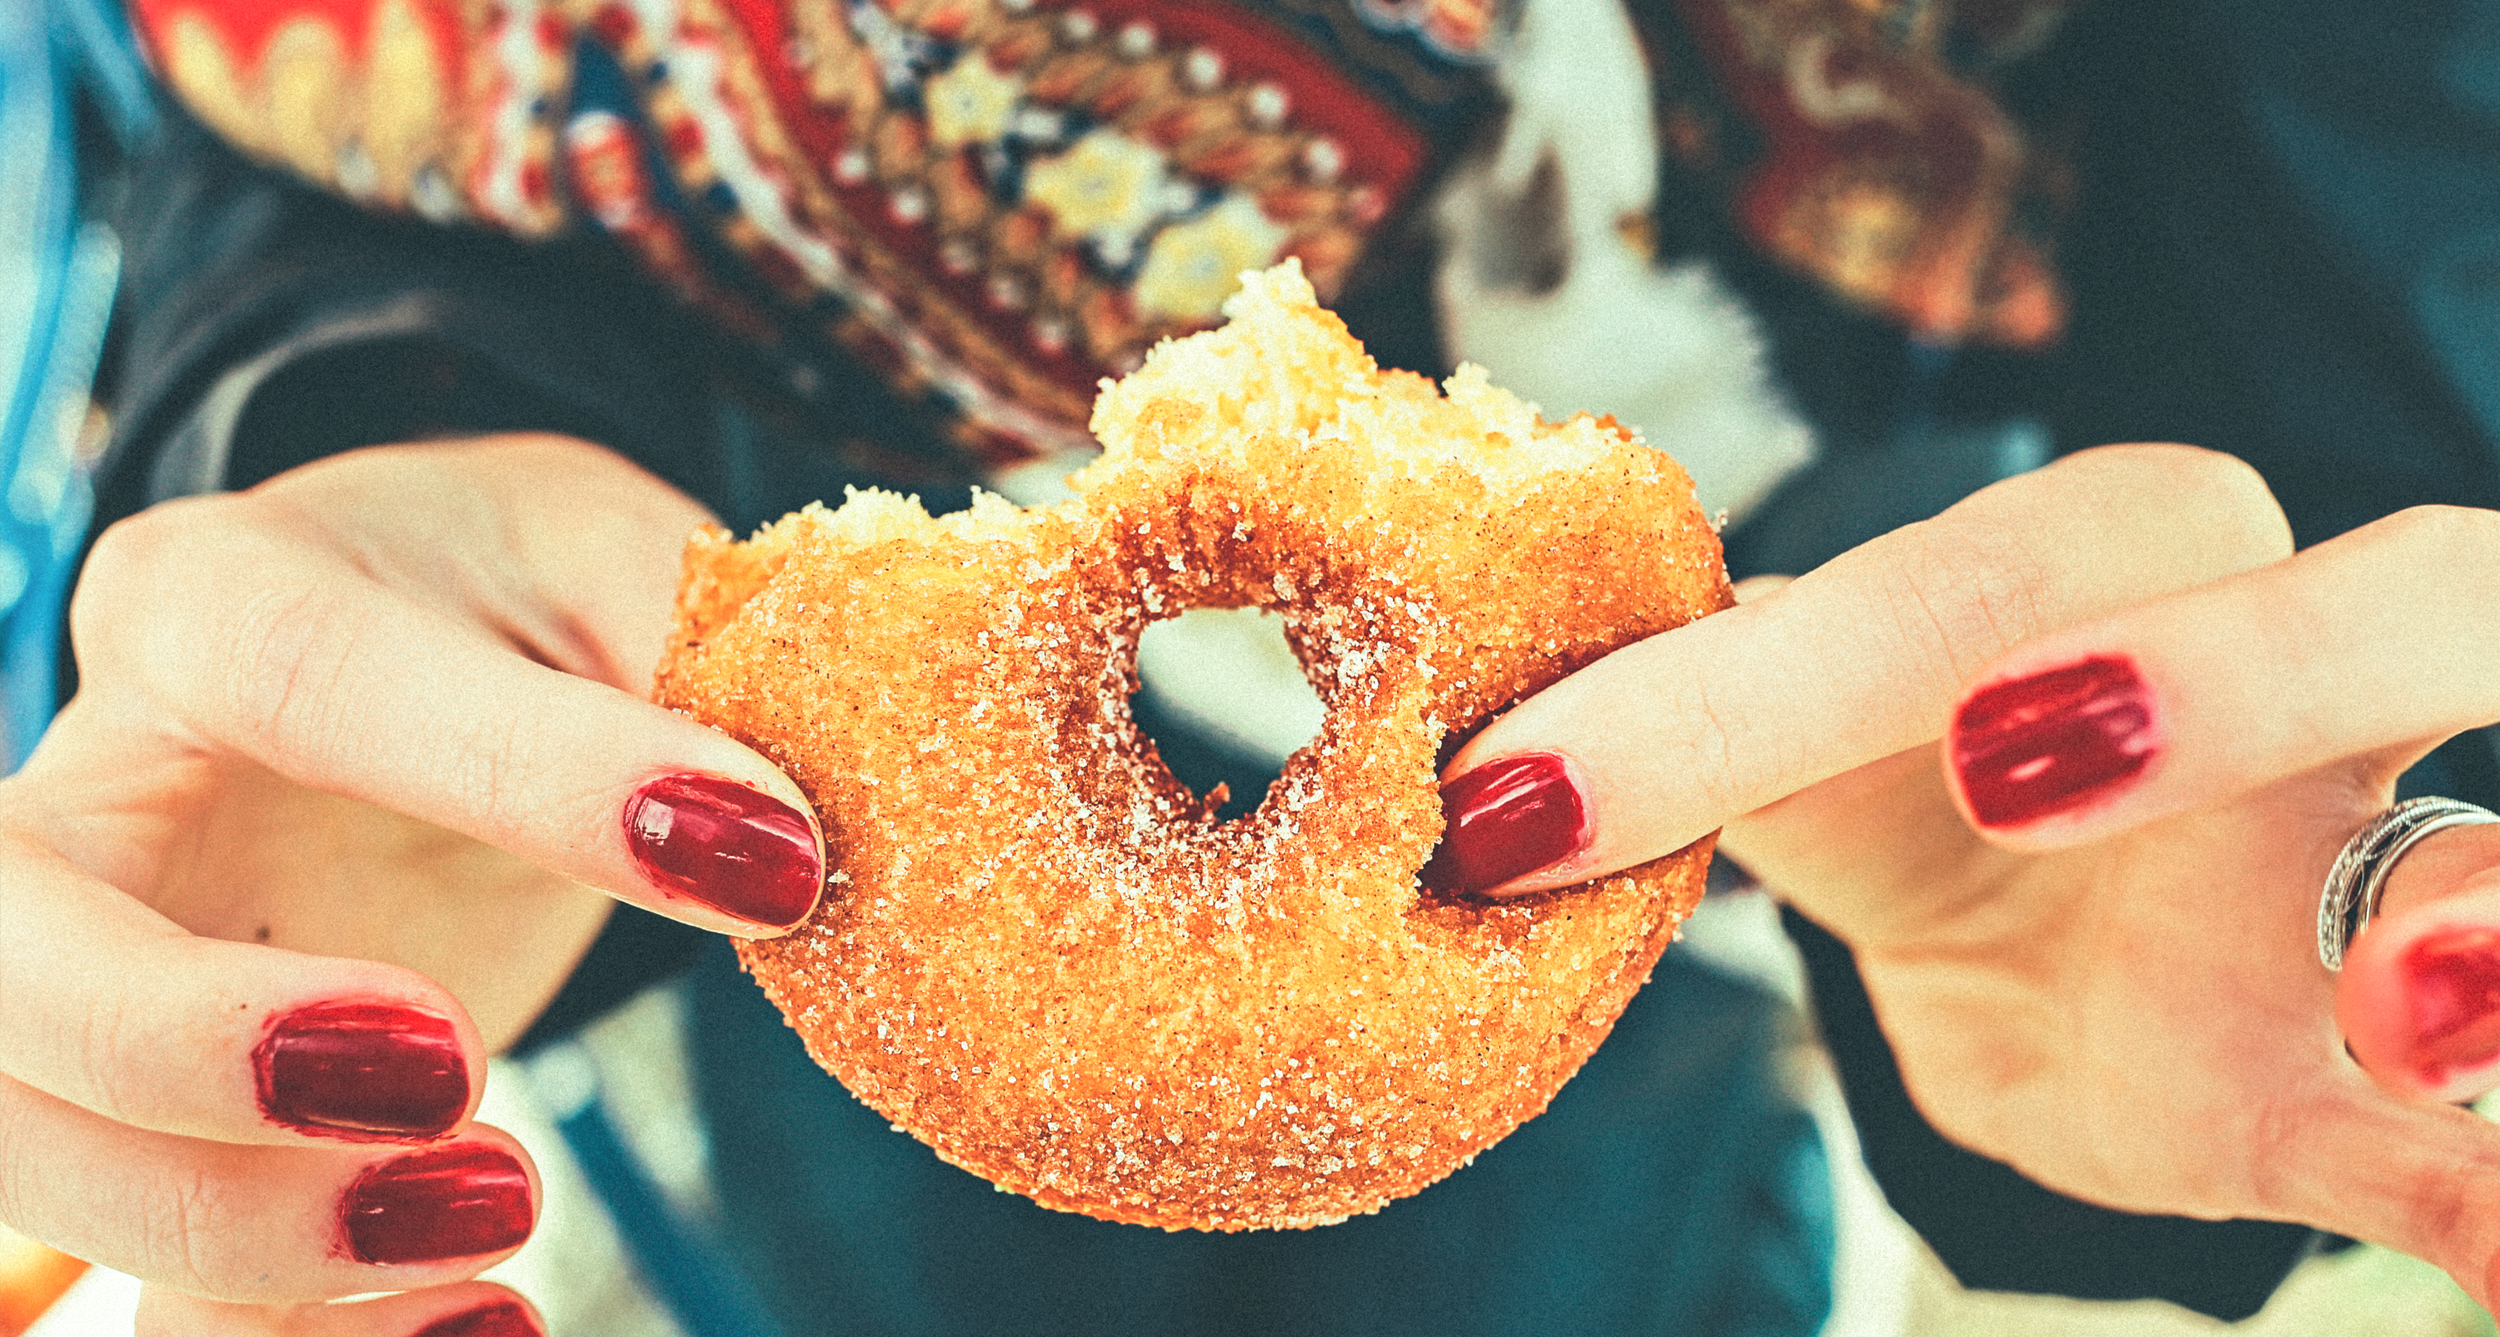 sugar in donuts is bad for you